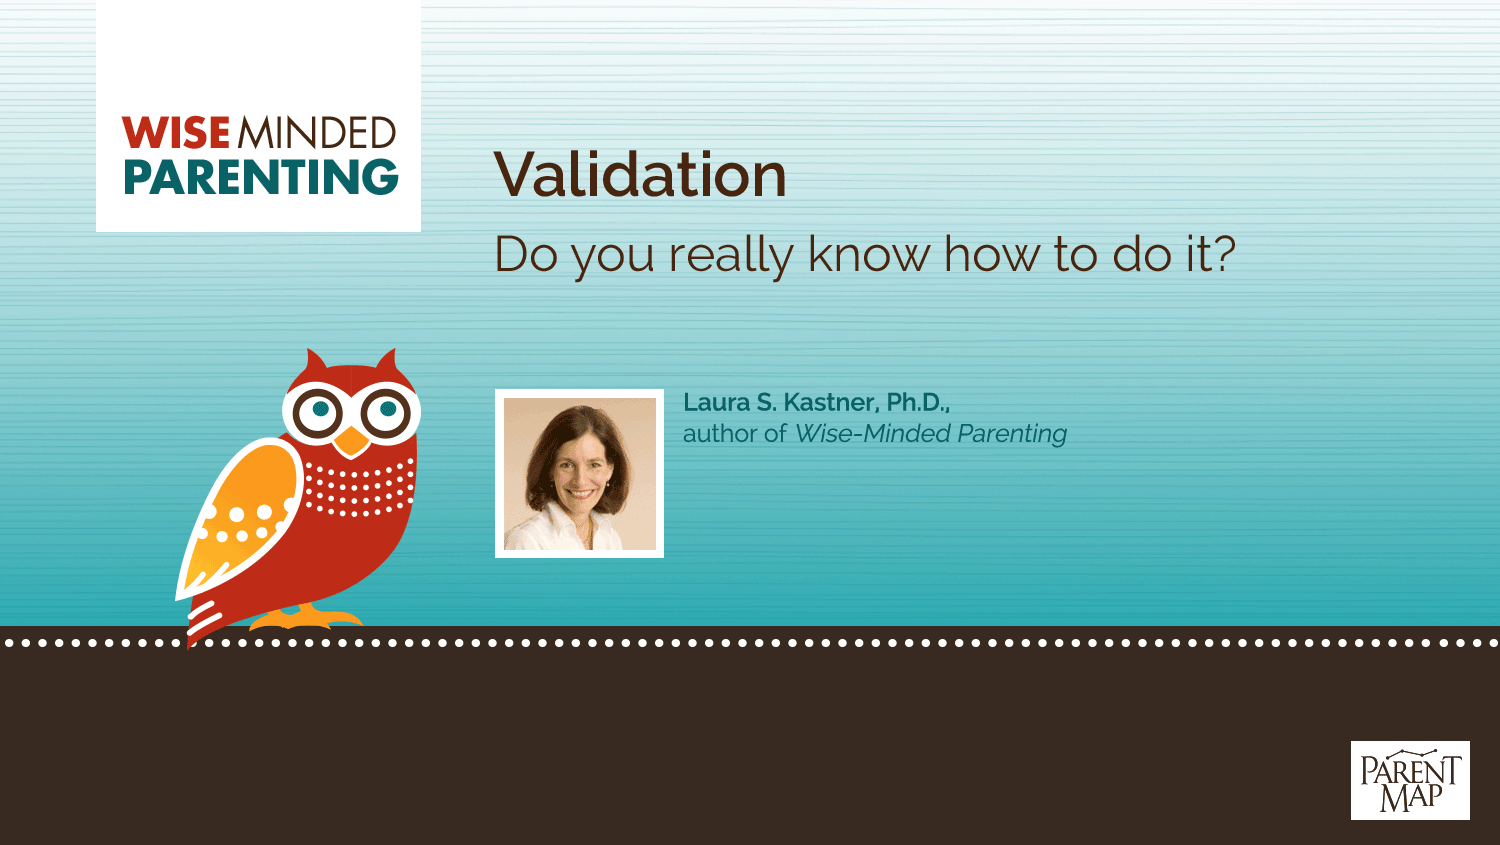 Validation: Do you really know how to do it?